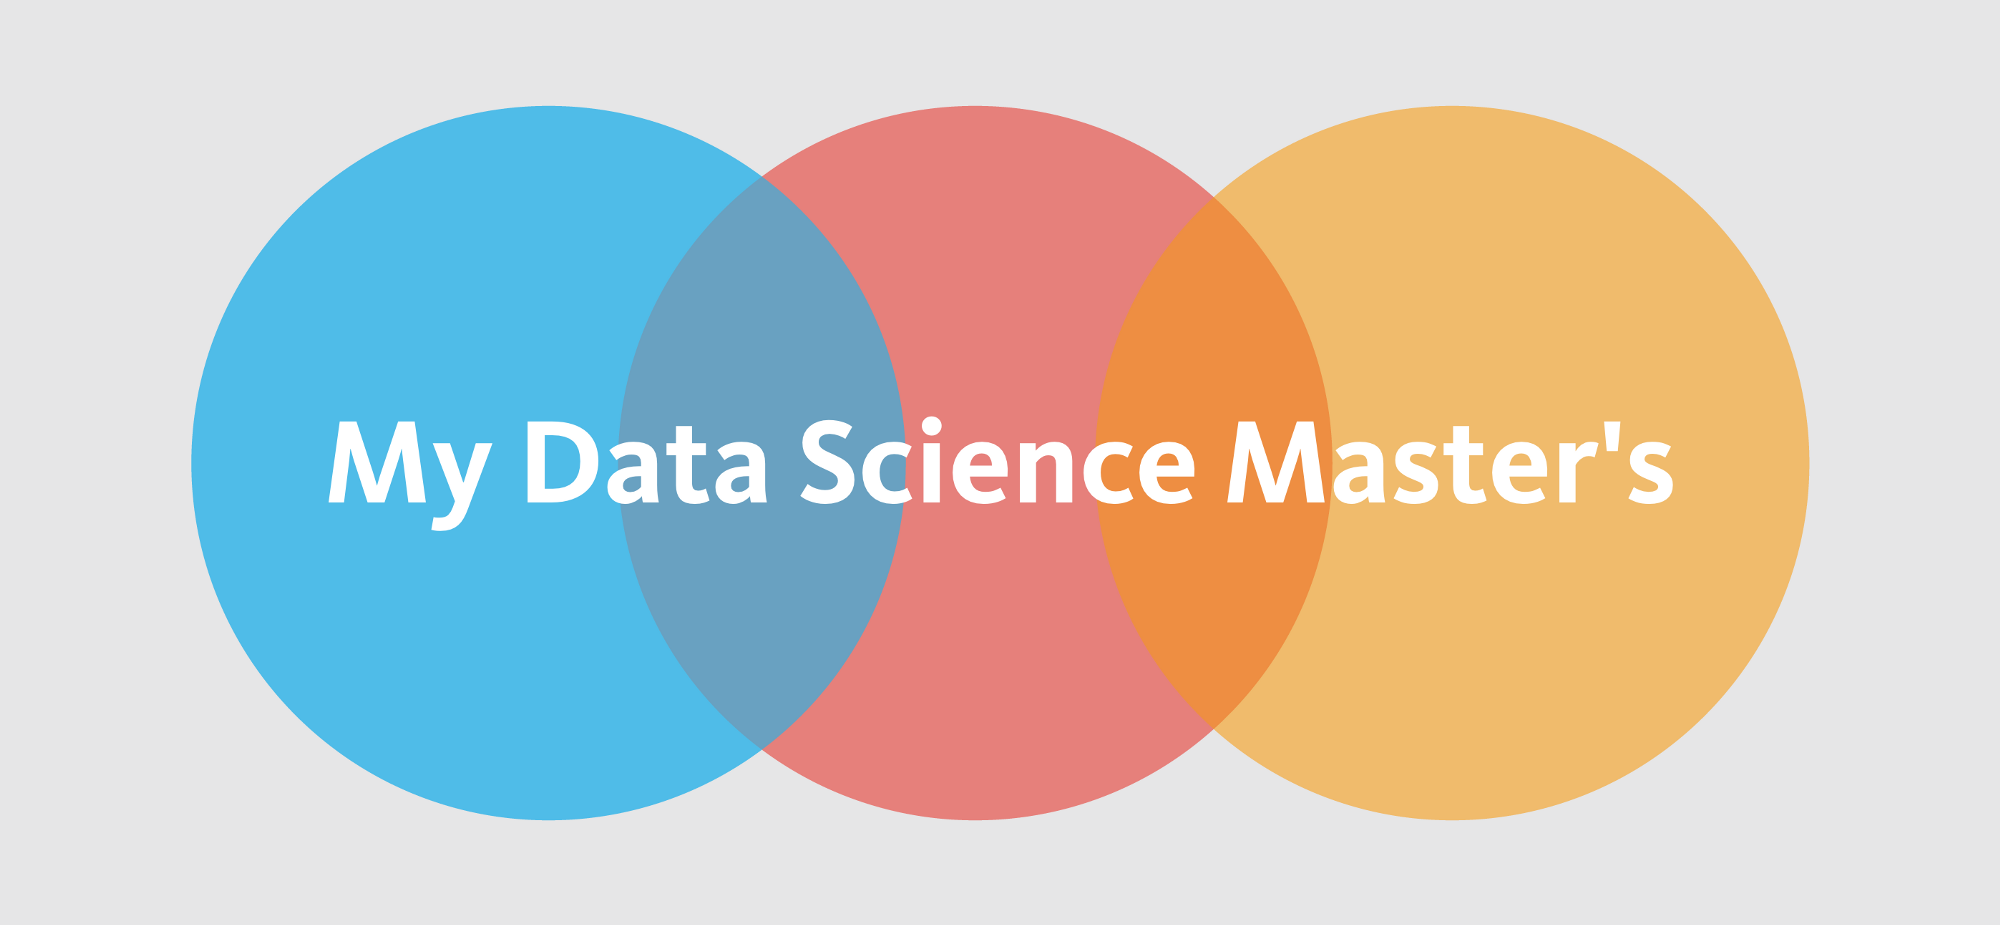 I Dropped Out Of School To Create My Own Data Science Masteru0027s U2014 Hereu0027s My  Curriculum